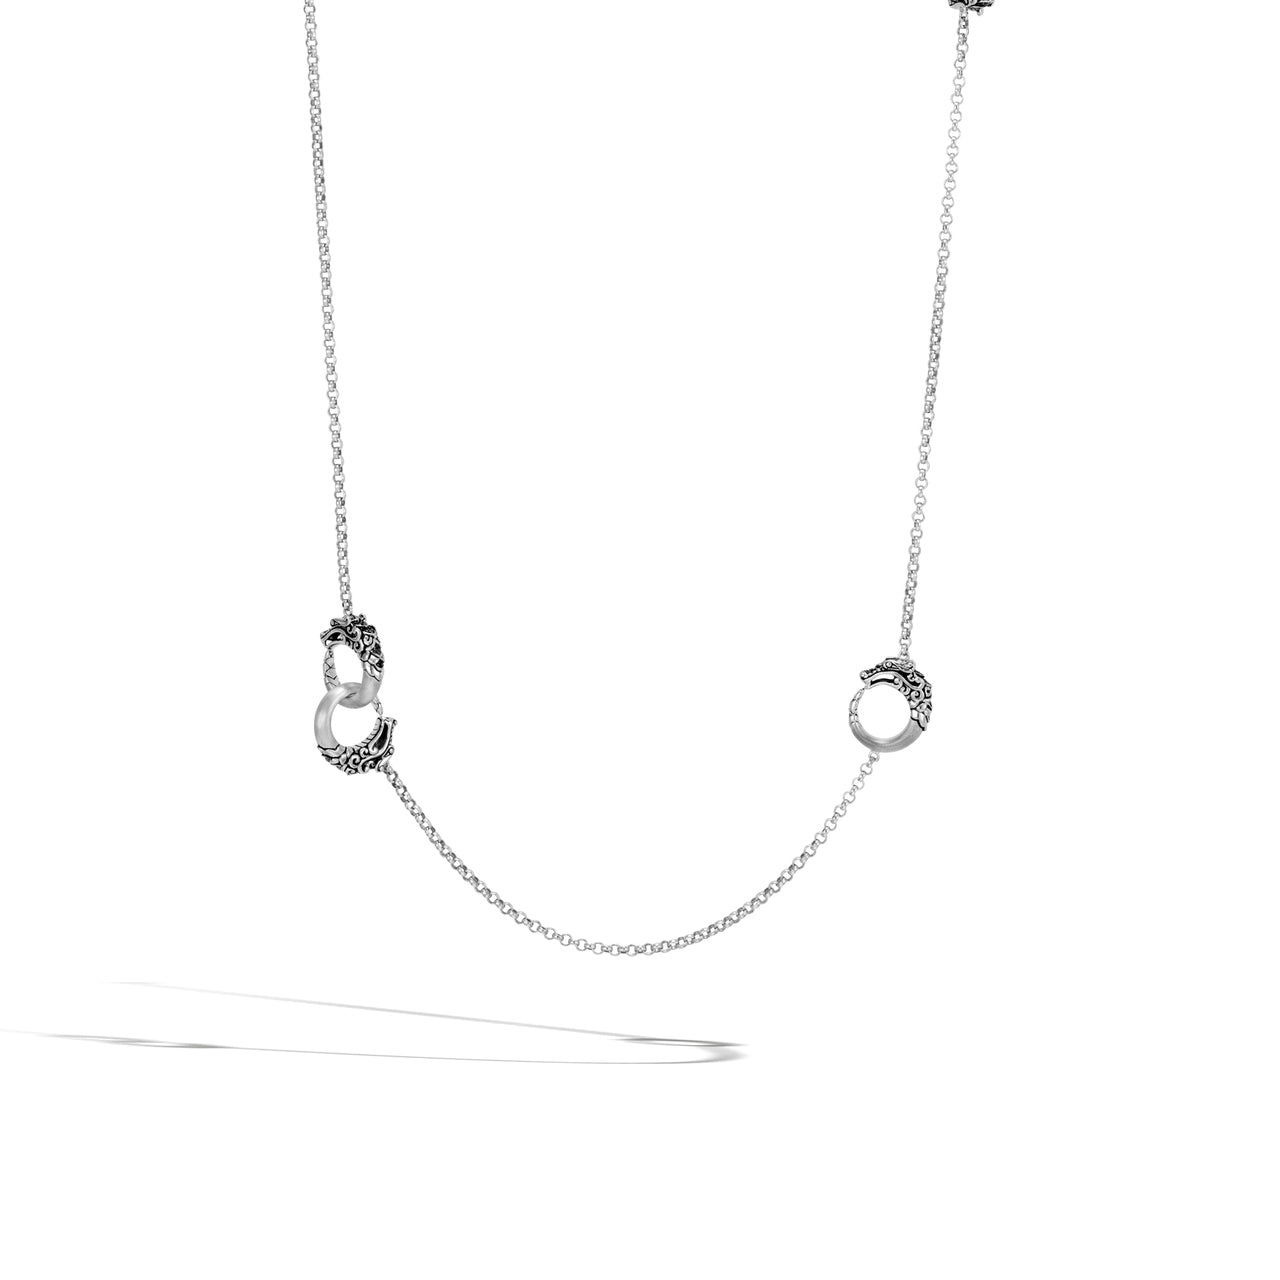 John Hardy Legends Naga Sterling Silver Station Necklace with Black Spinel